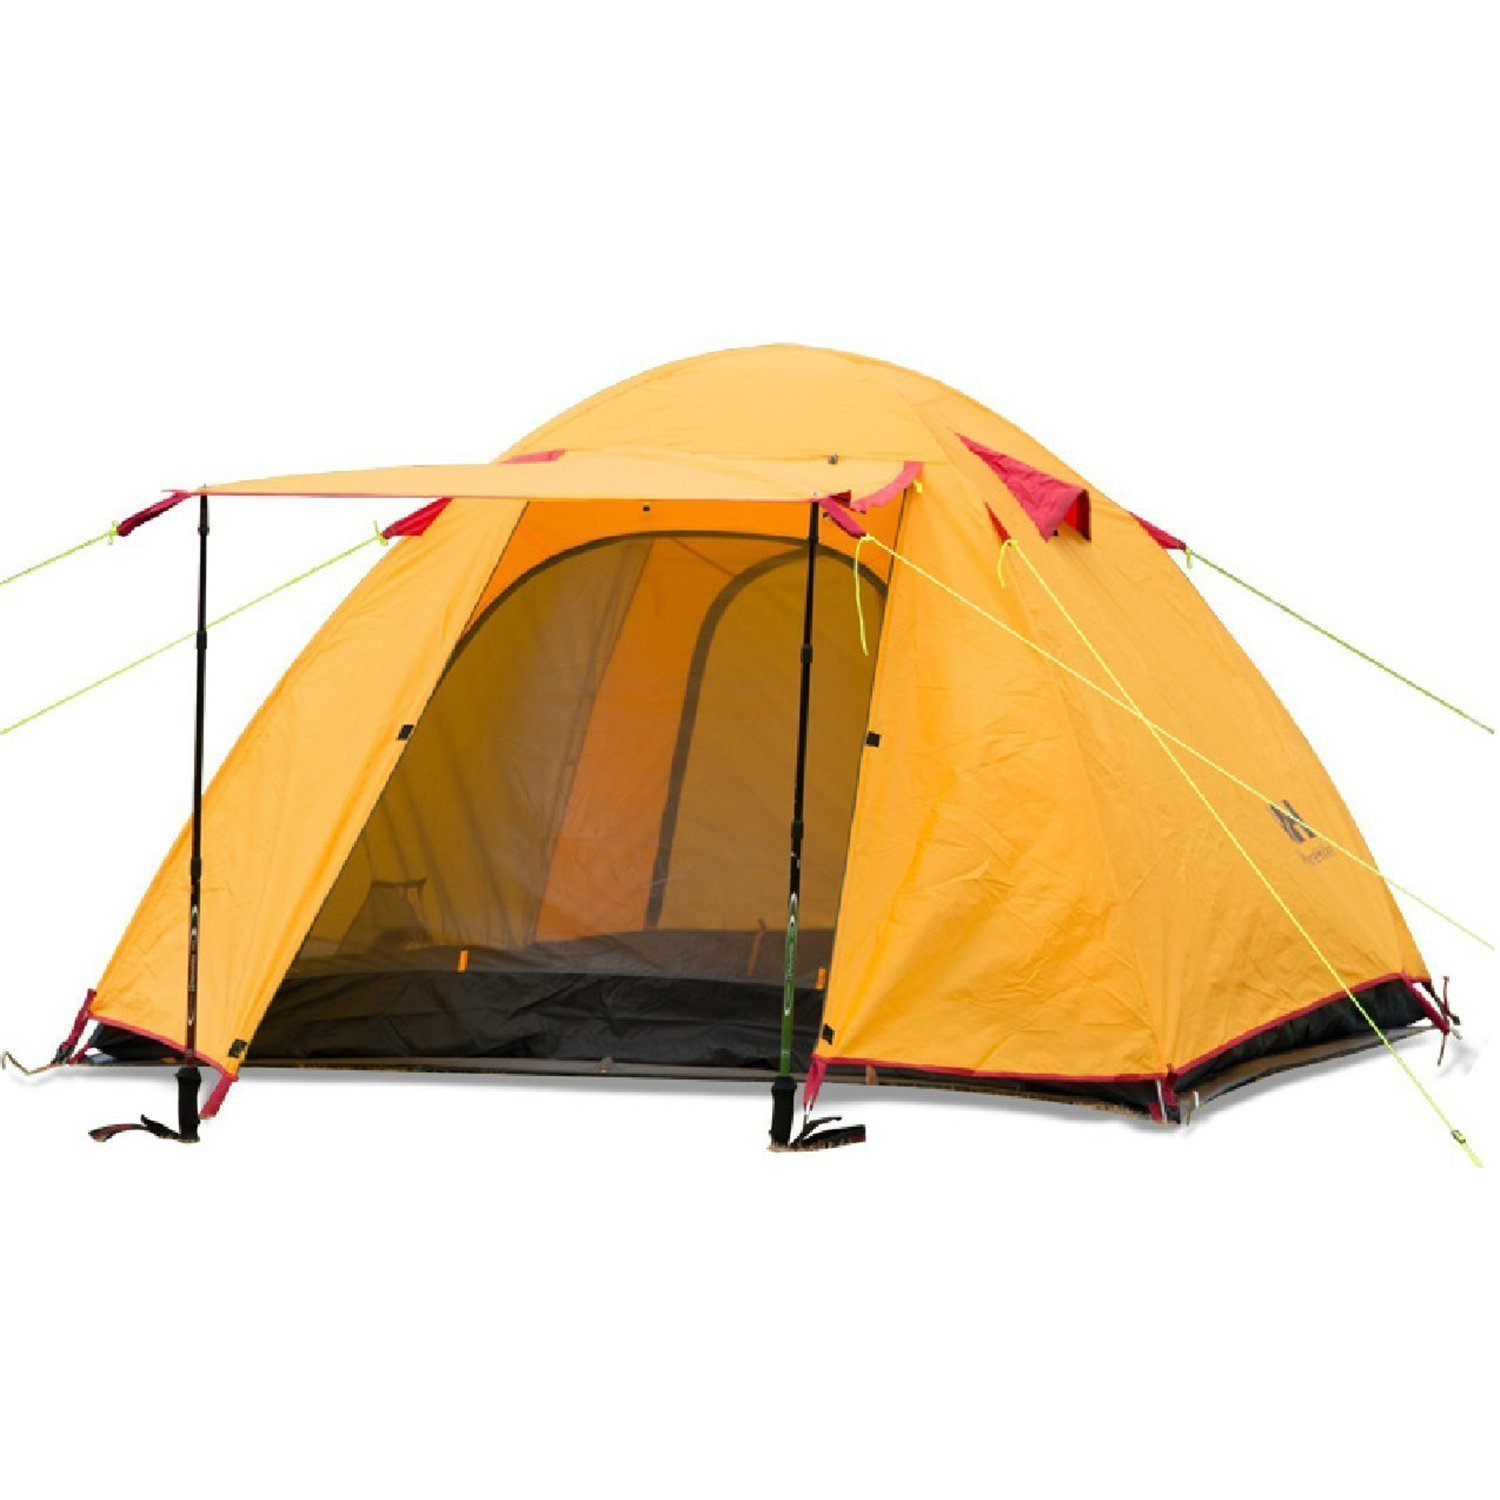 Naturehike P Series Two Person Backpacking Camping Tent, Three Season